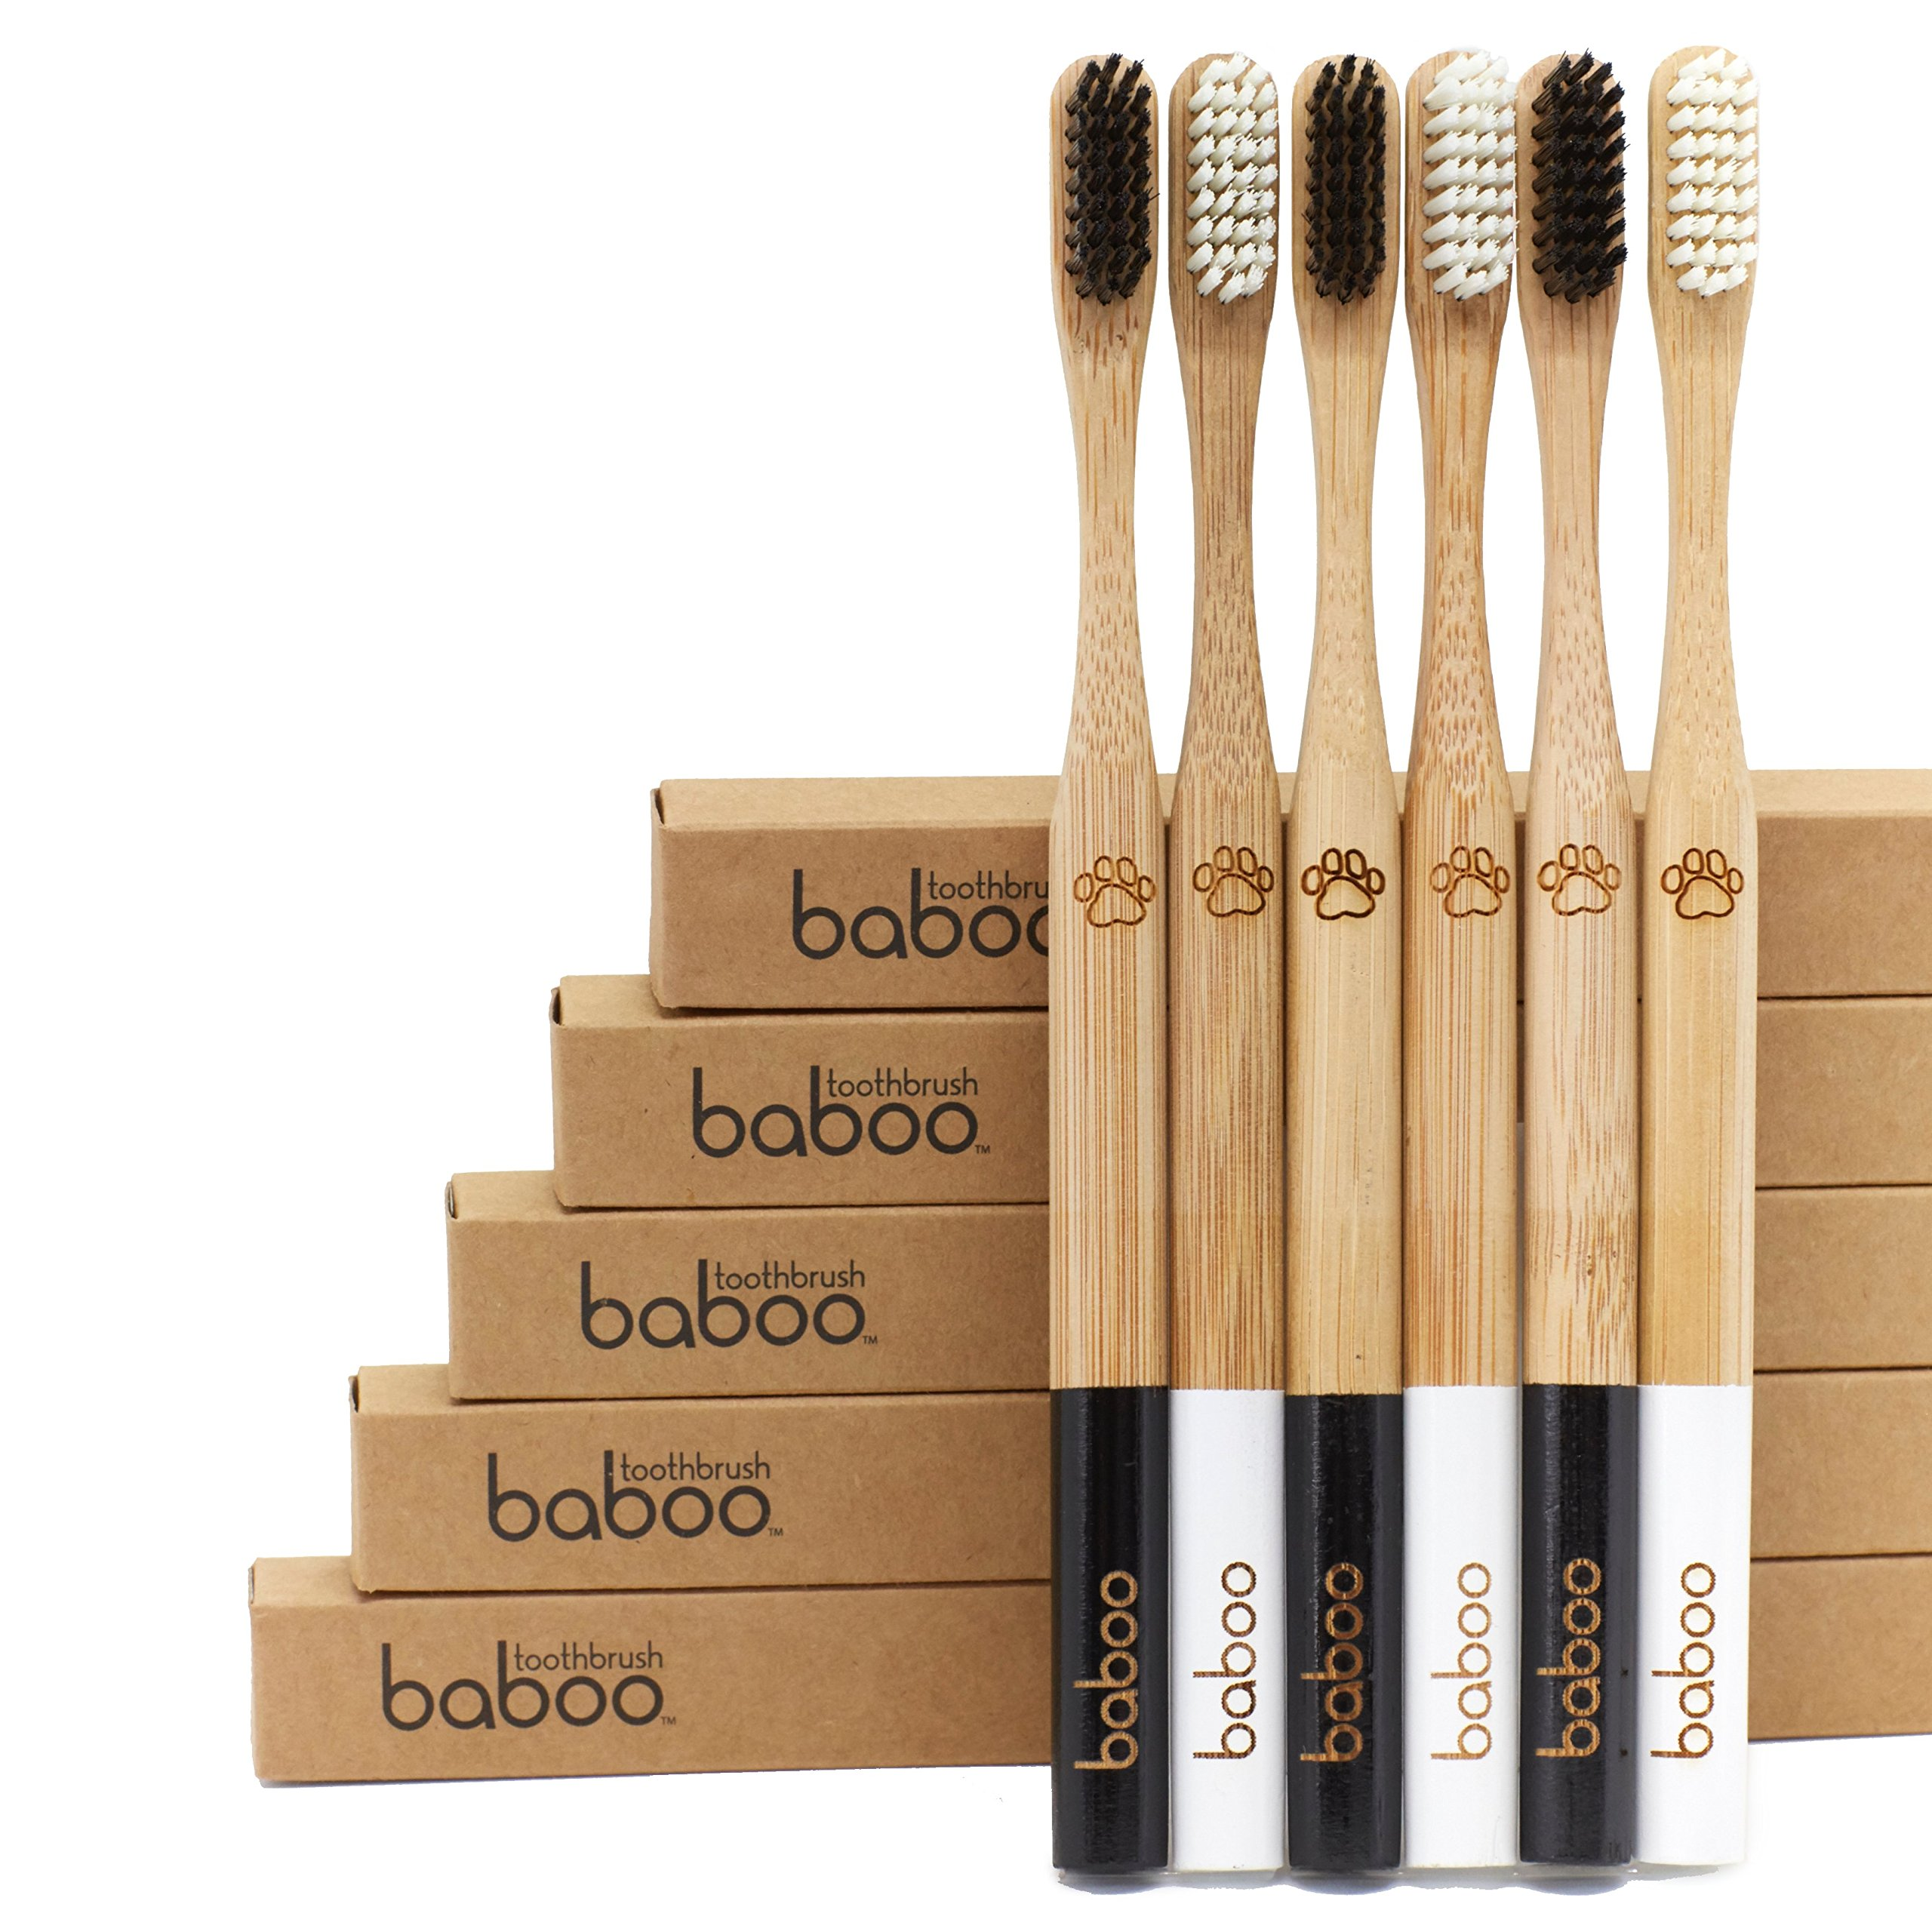 Baboo Natural Organic Bamboo Toothbrush - Eco-Friendly - Extra Soft & Medium BPA Free Activated Charcoal Bristles - Bamboo Wooden Handle - Safe for Adults Kids & your Pets - Pack of 2 by BABOO